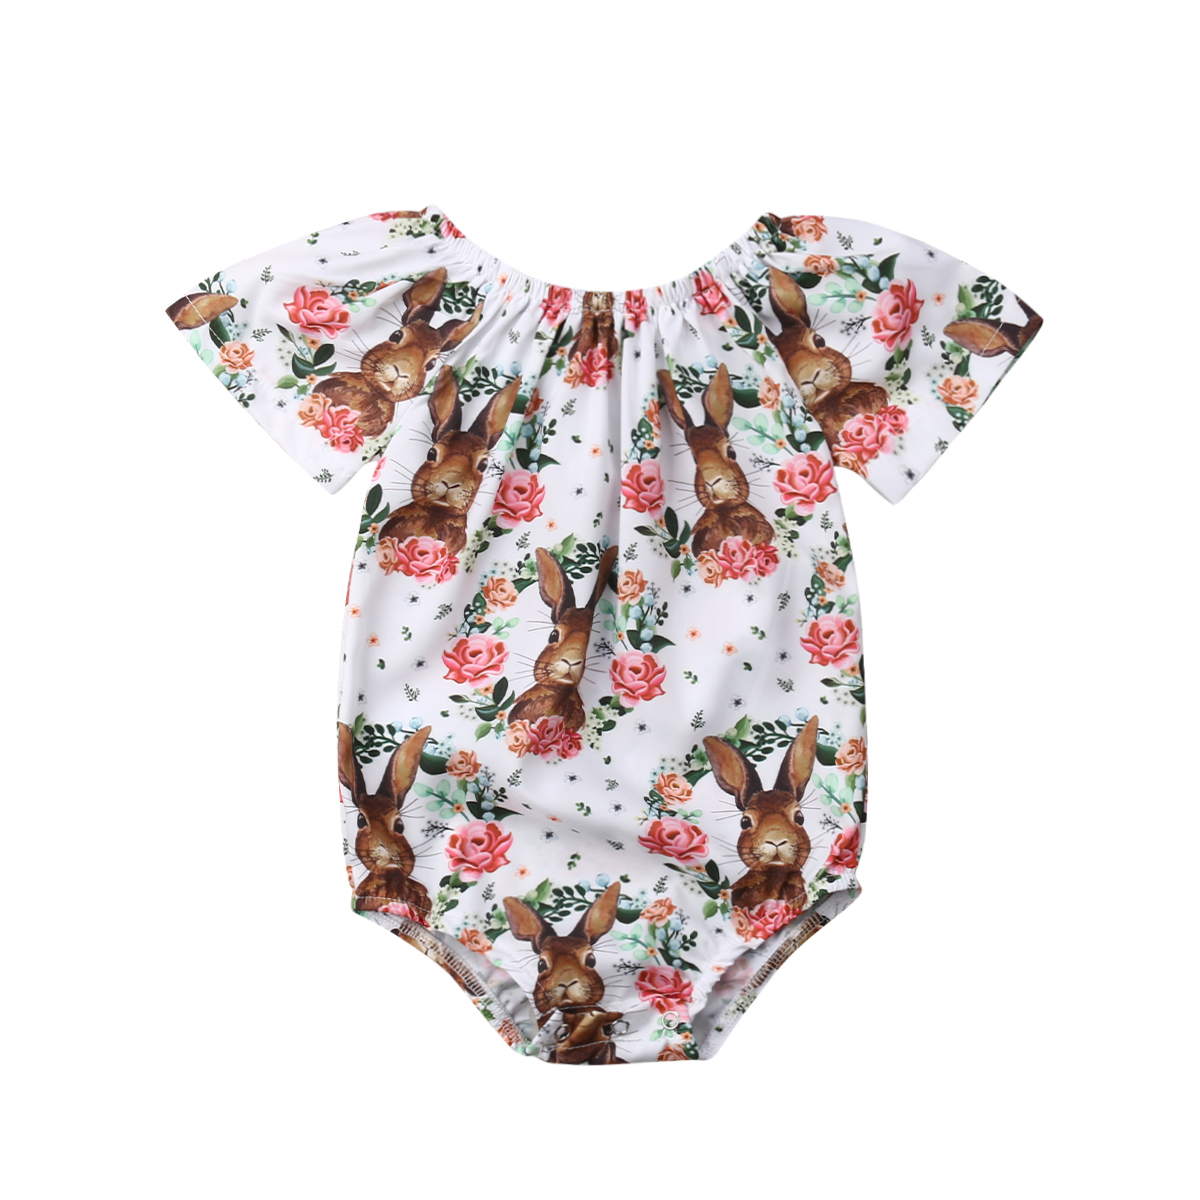 2019 Easter Newborn   Romper   Baby Girls Bunny Flowers   Romper   Jumpsuit Toddler Infant One-Piece Outfits Clothes 0-2T